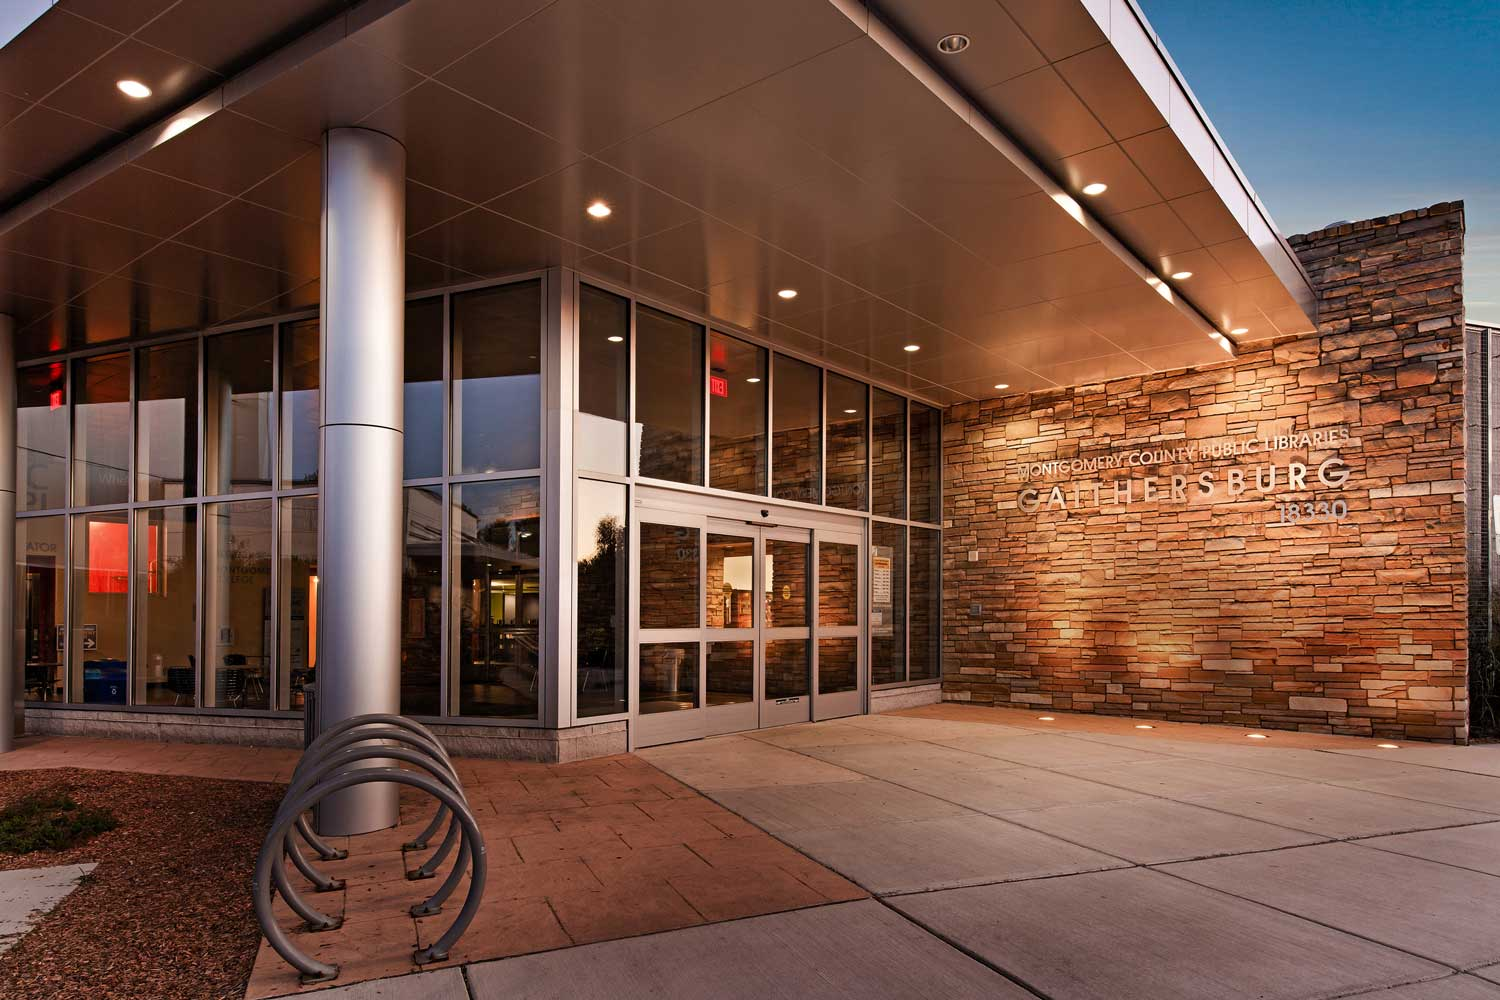 Gaithersburg Library is 10 minutes from Governor Square Apartments